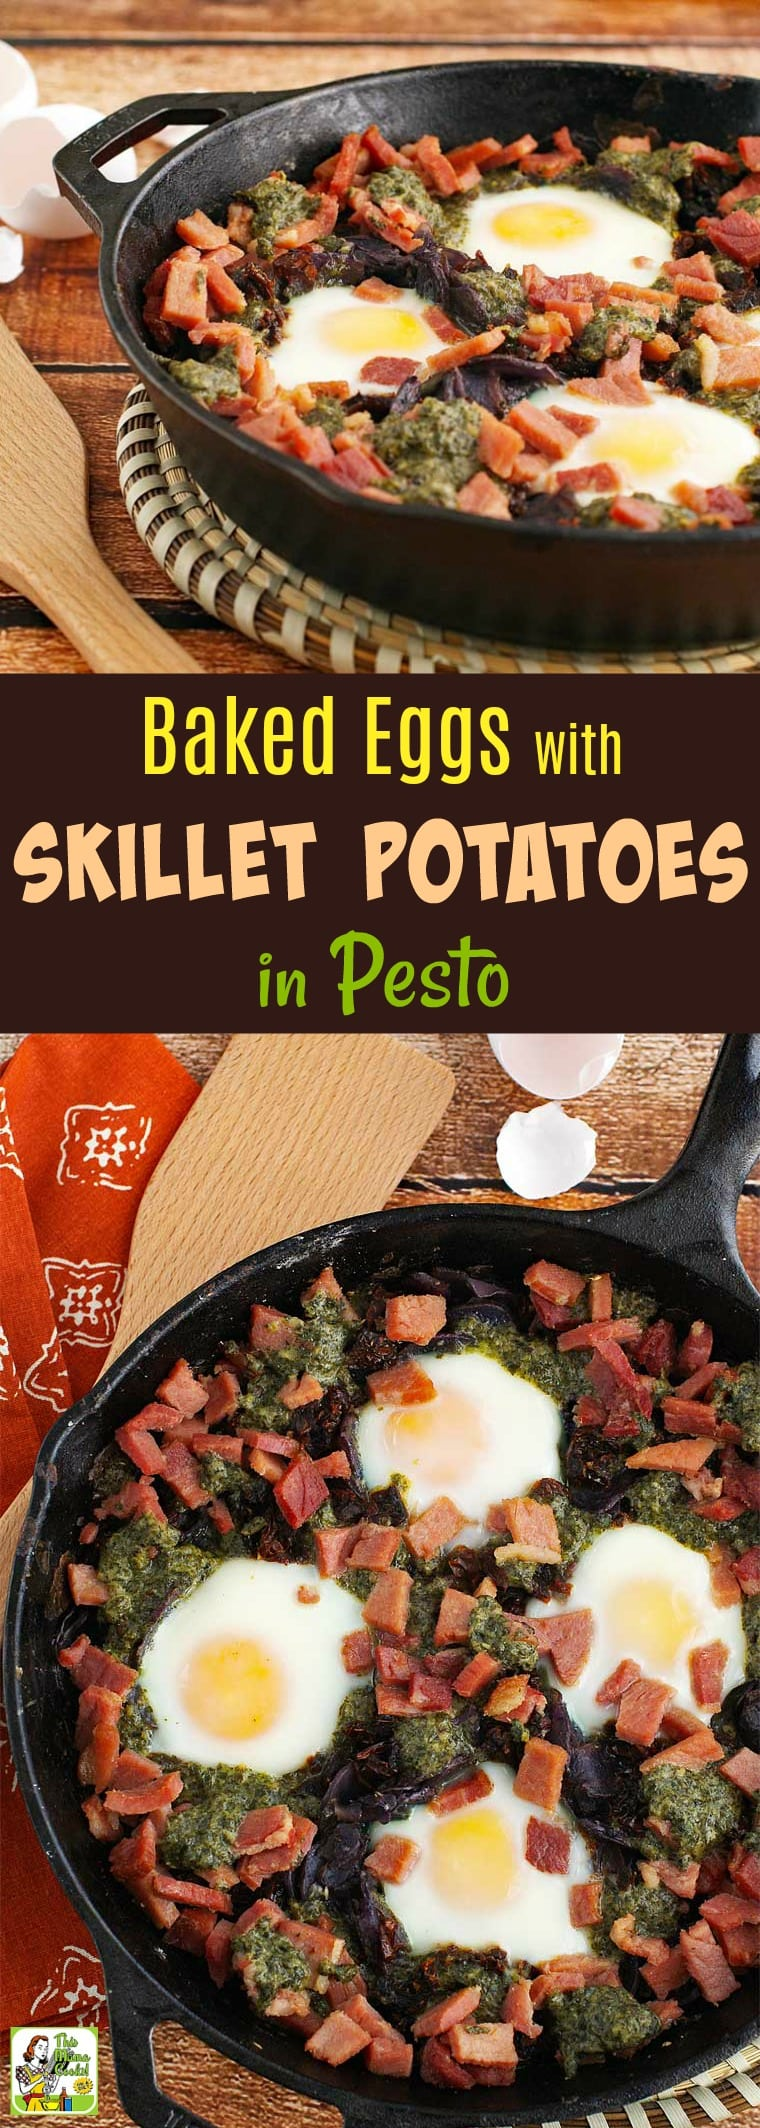 Do you make skillet potatoes for breakfast? Then you\'ll love this baked eggs recipe made with pesto and sun dried tomatoes. Baked Eggs with Skillet Potatoes in Pesto would also make a terrific brinner (breakfast for dinner) dish. Serve it with a side salad and toast. Naturally gluten free. #Breakfast #Brinner #SkilletPotatoes #SkilletEggs #SkilletPotatoes #BakedEggs #GlutenFree #Pesto #Potatoes #OnePot